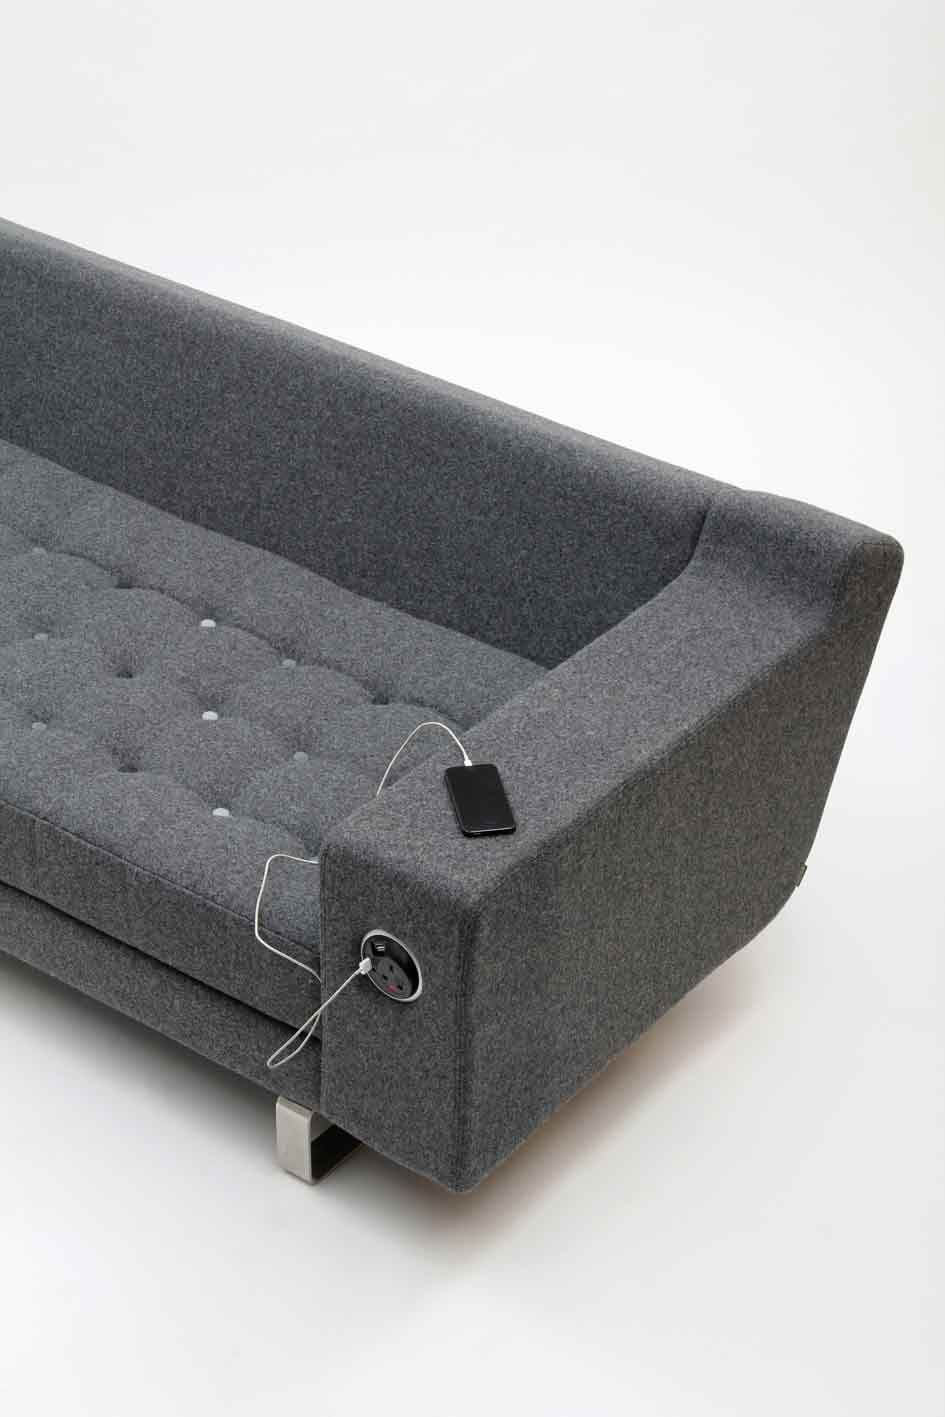 Sofa Relax Con Usb Portion Power Usb Unit Furniture Pinterest Office Electrics